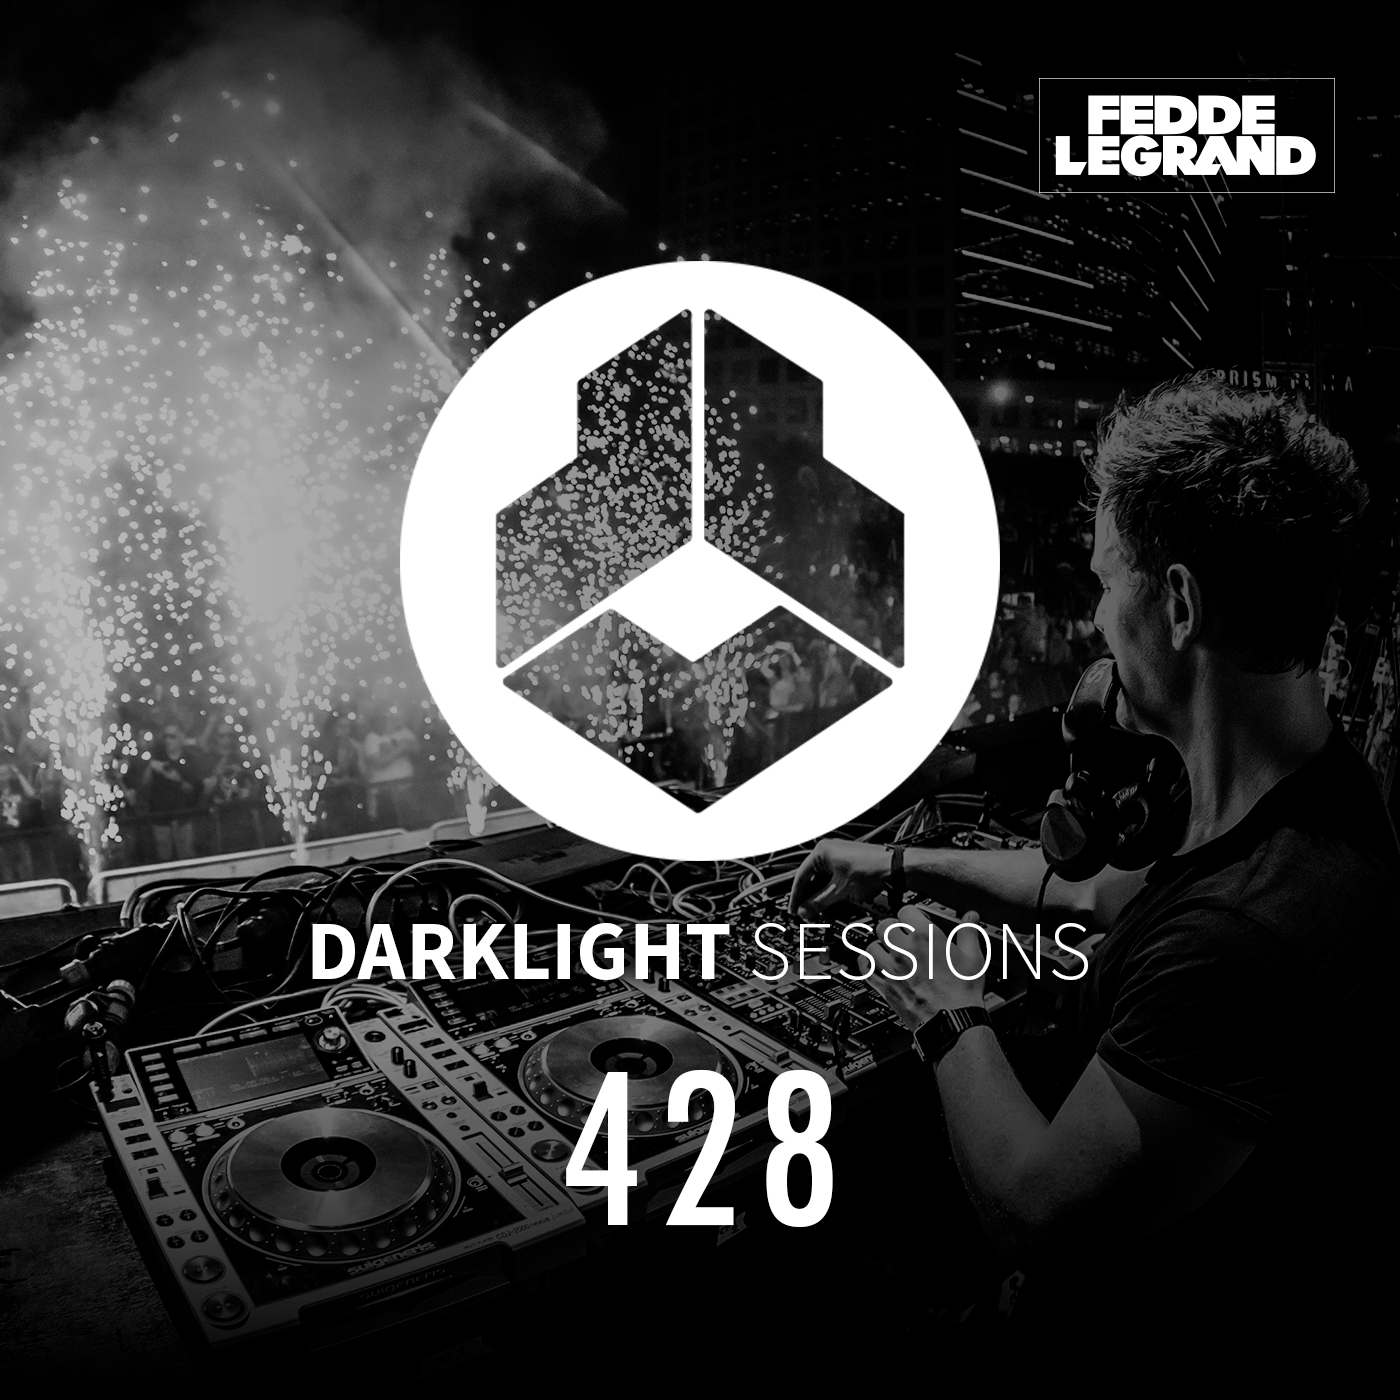 Darklight Sessions 429